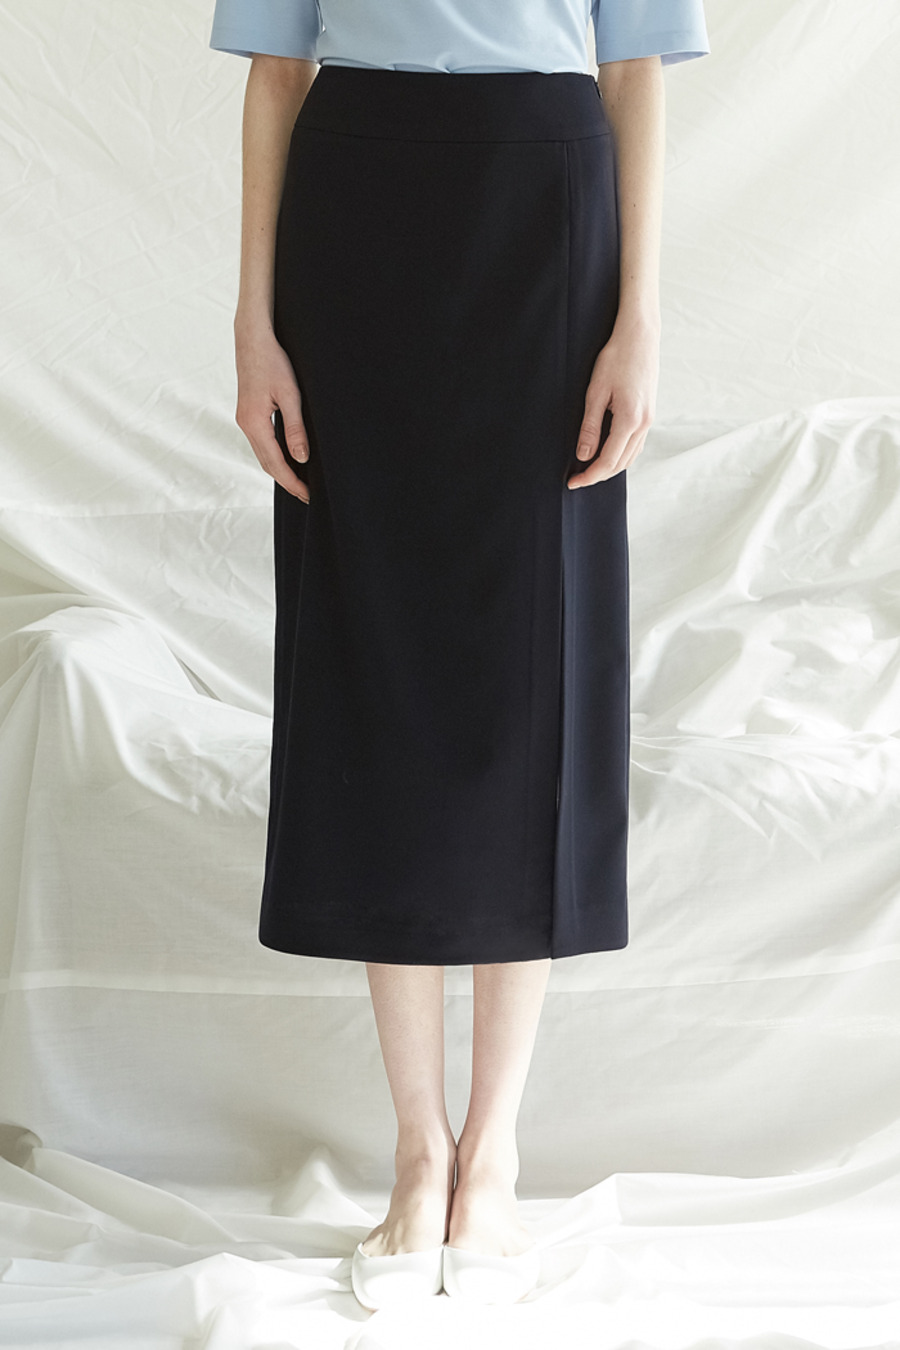 [5%] SLIT LONG SKIRT - NAVY